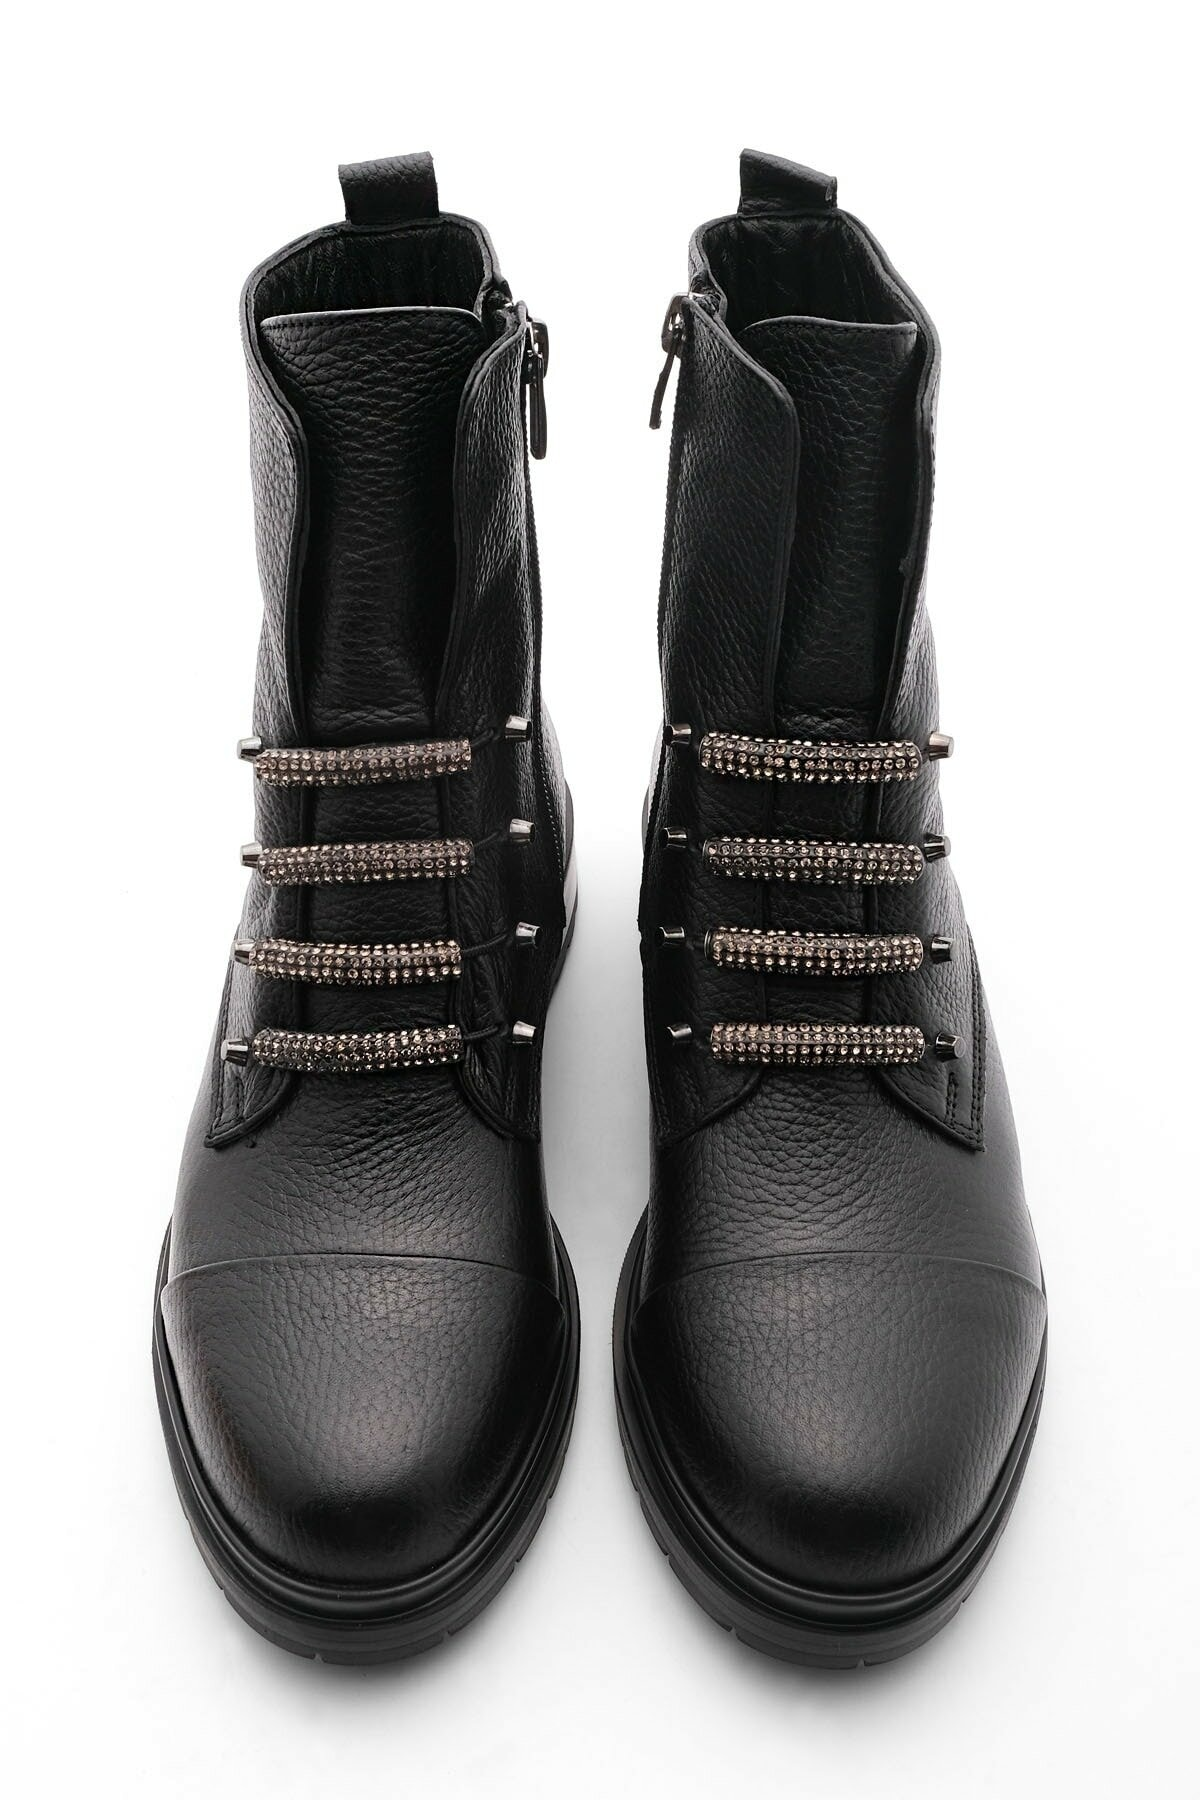 Women's boots Flat Bottom Genuine Leather Women Boots enlarge